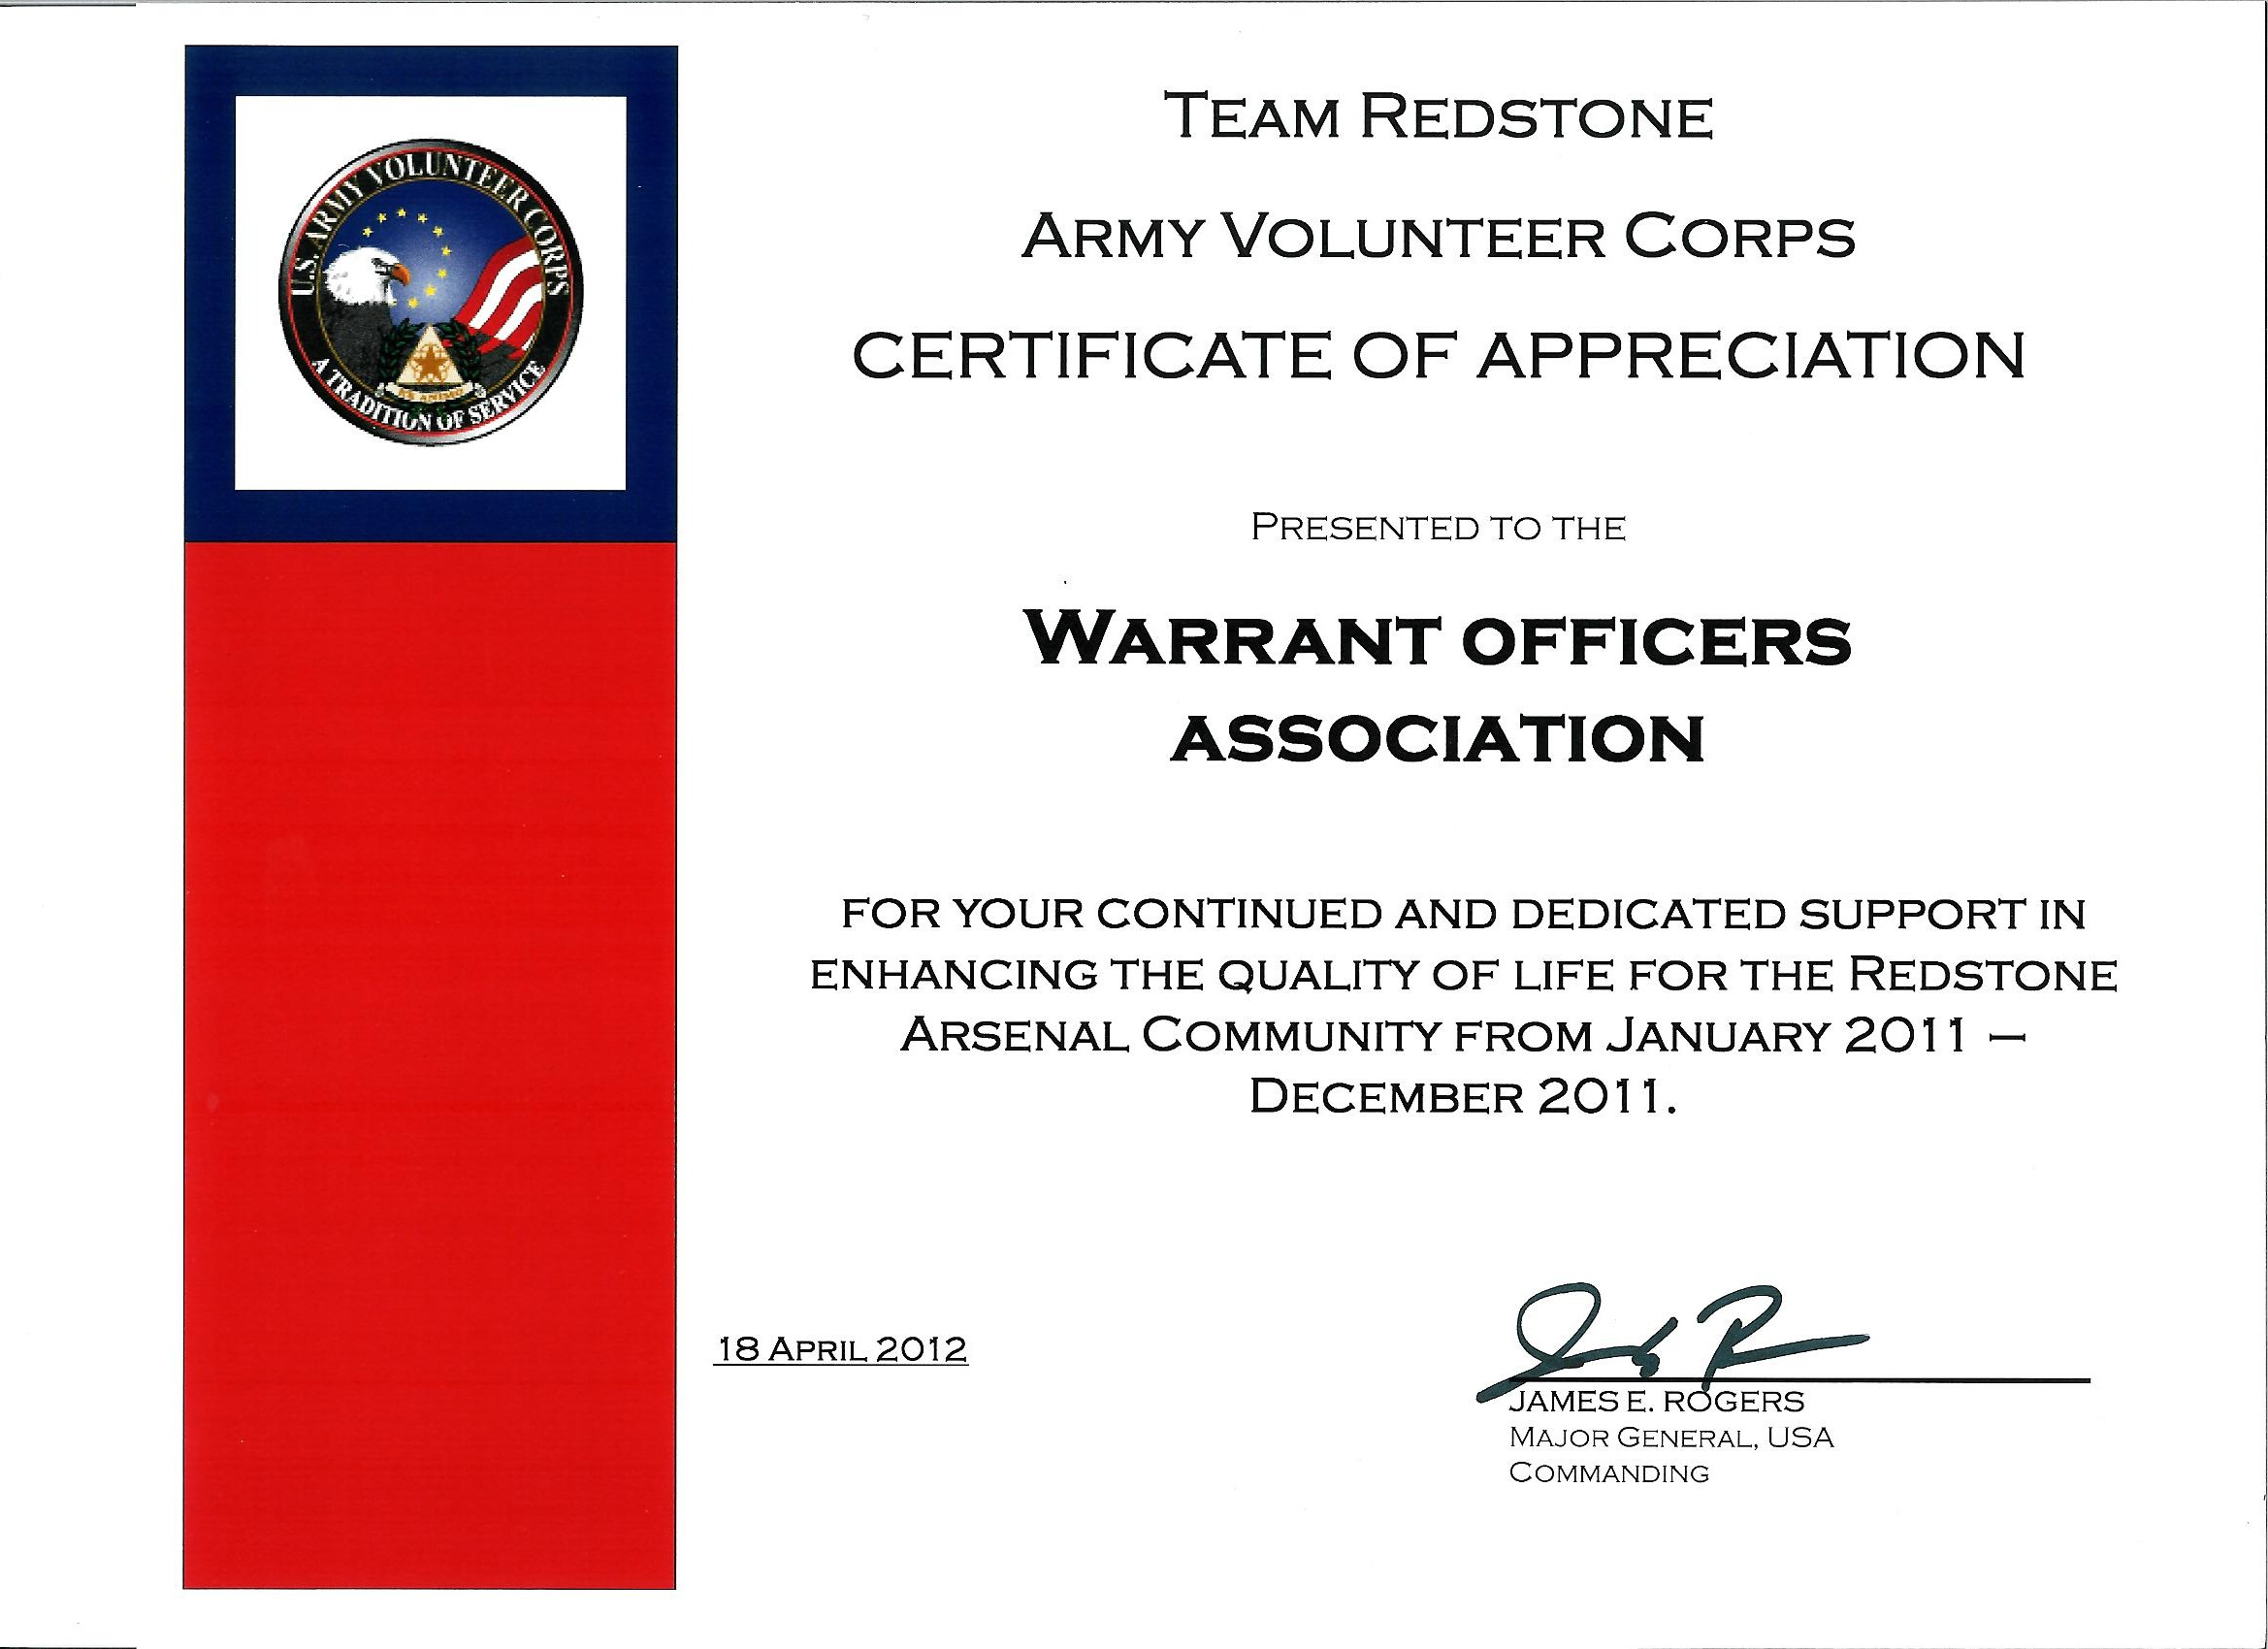 35-2011 USAWOA Community Affairs Certificate